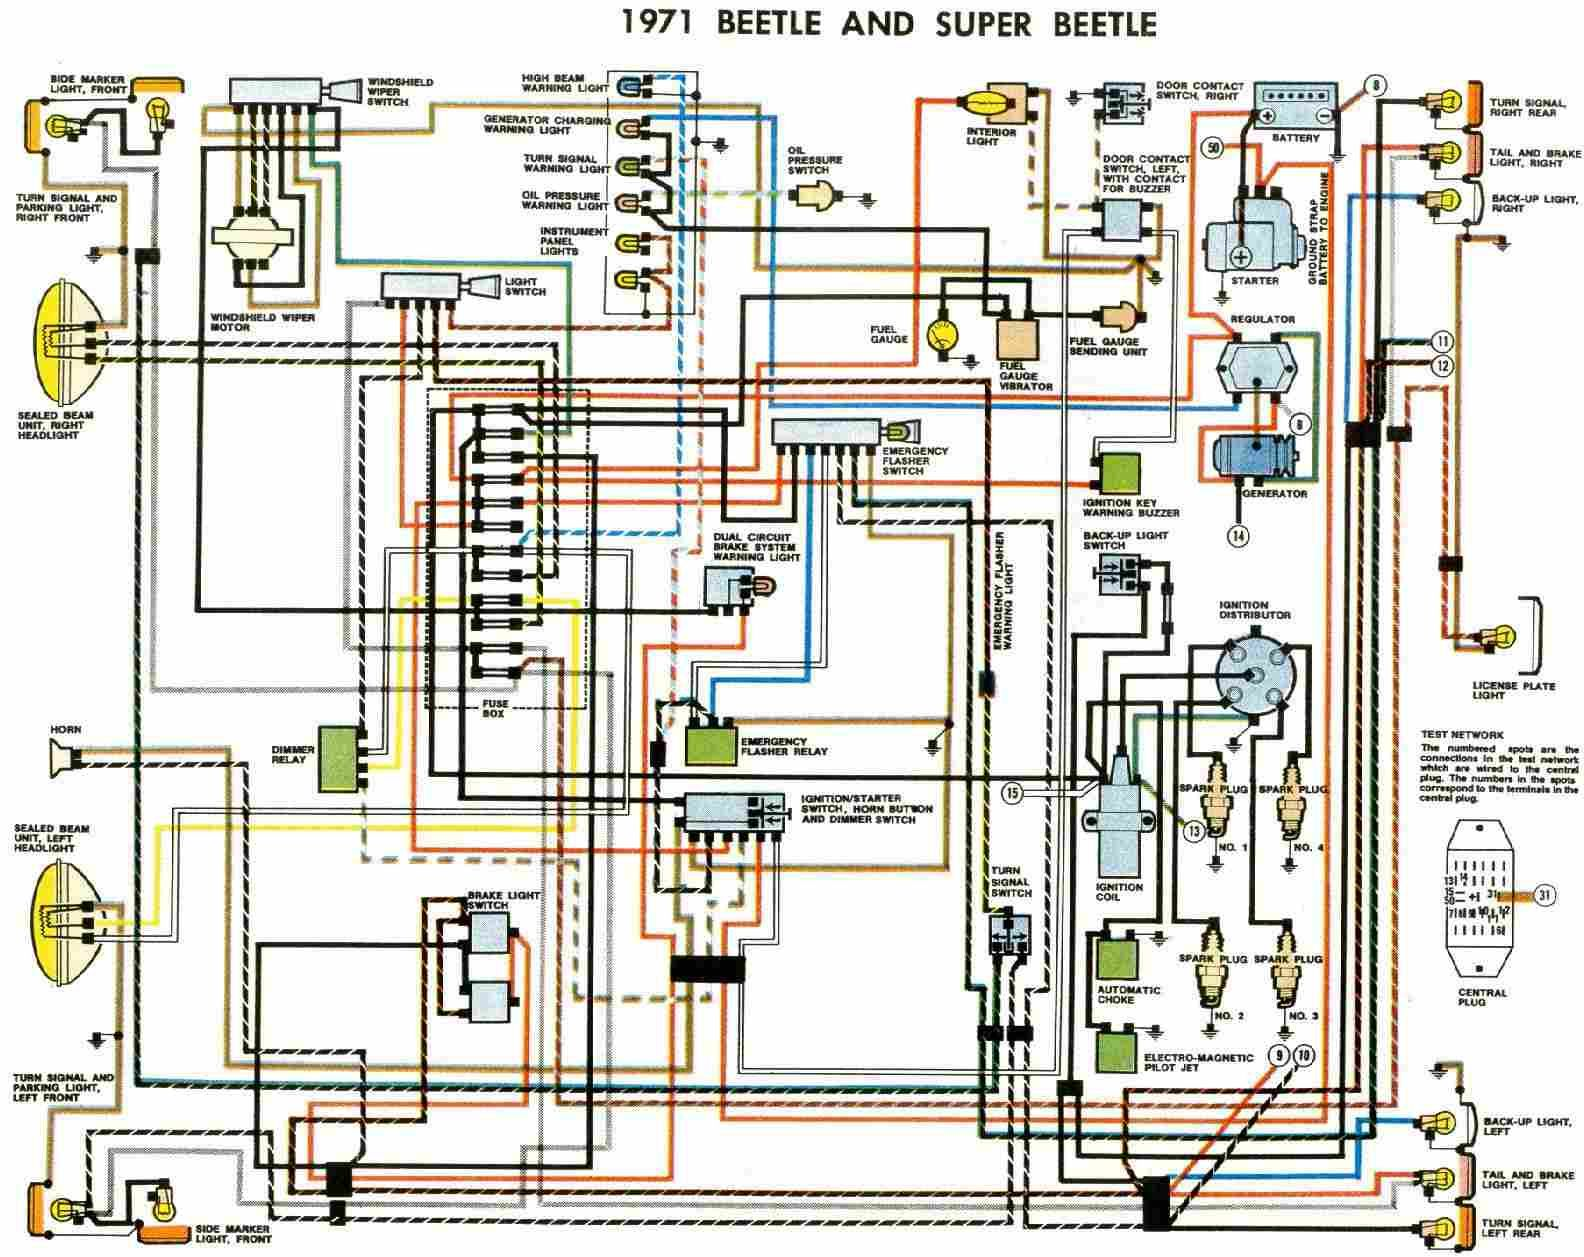 6379f2a777a0eb1b27fdba46670ceb6a how to read vw wiring diagrams basic motorcycle wiring diagram how to read automotive wiring diagrams pdf at bakdesigns.co